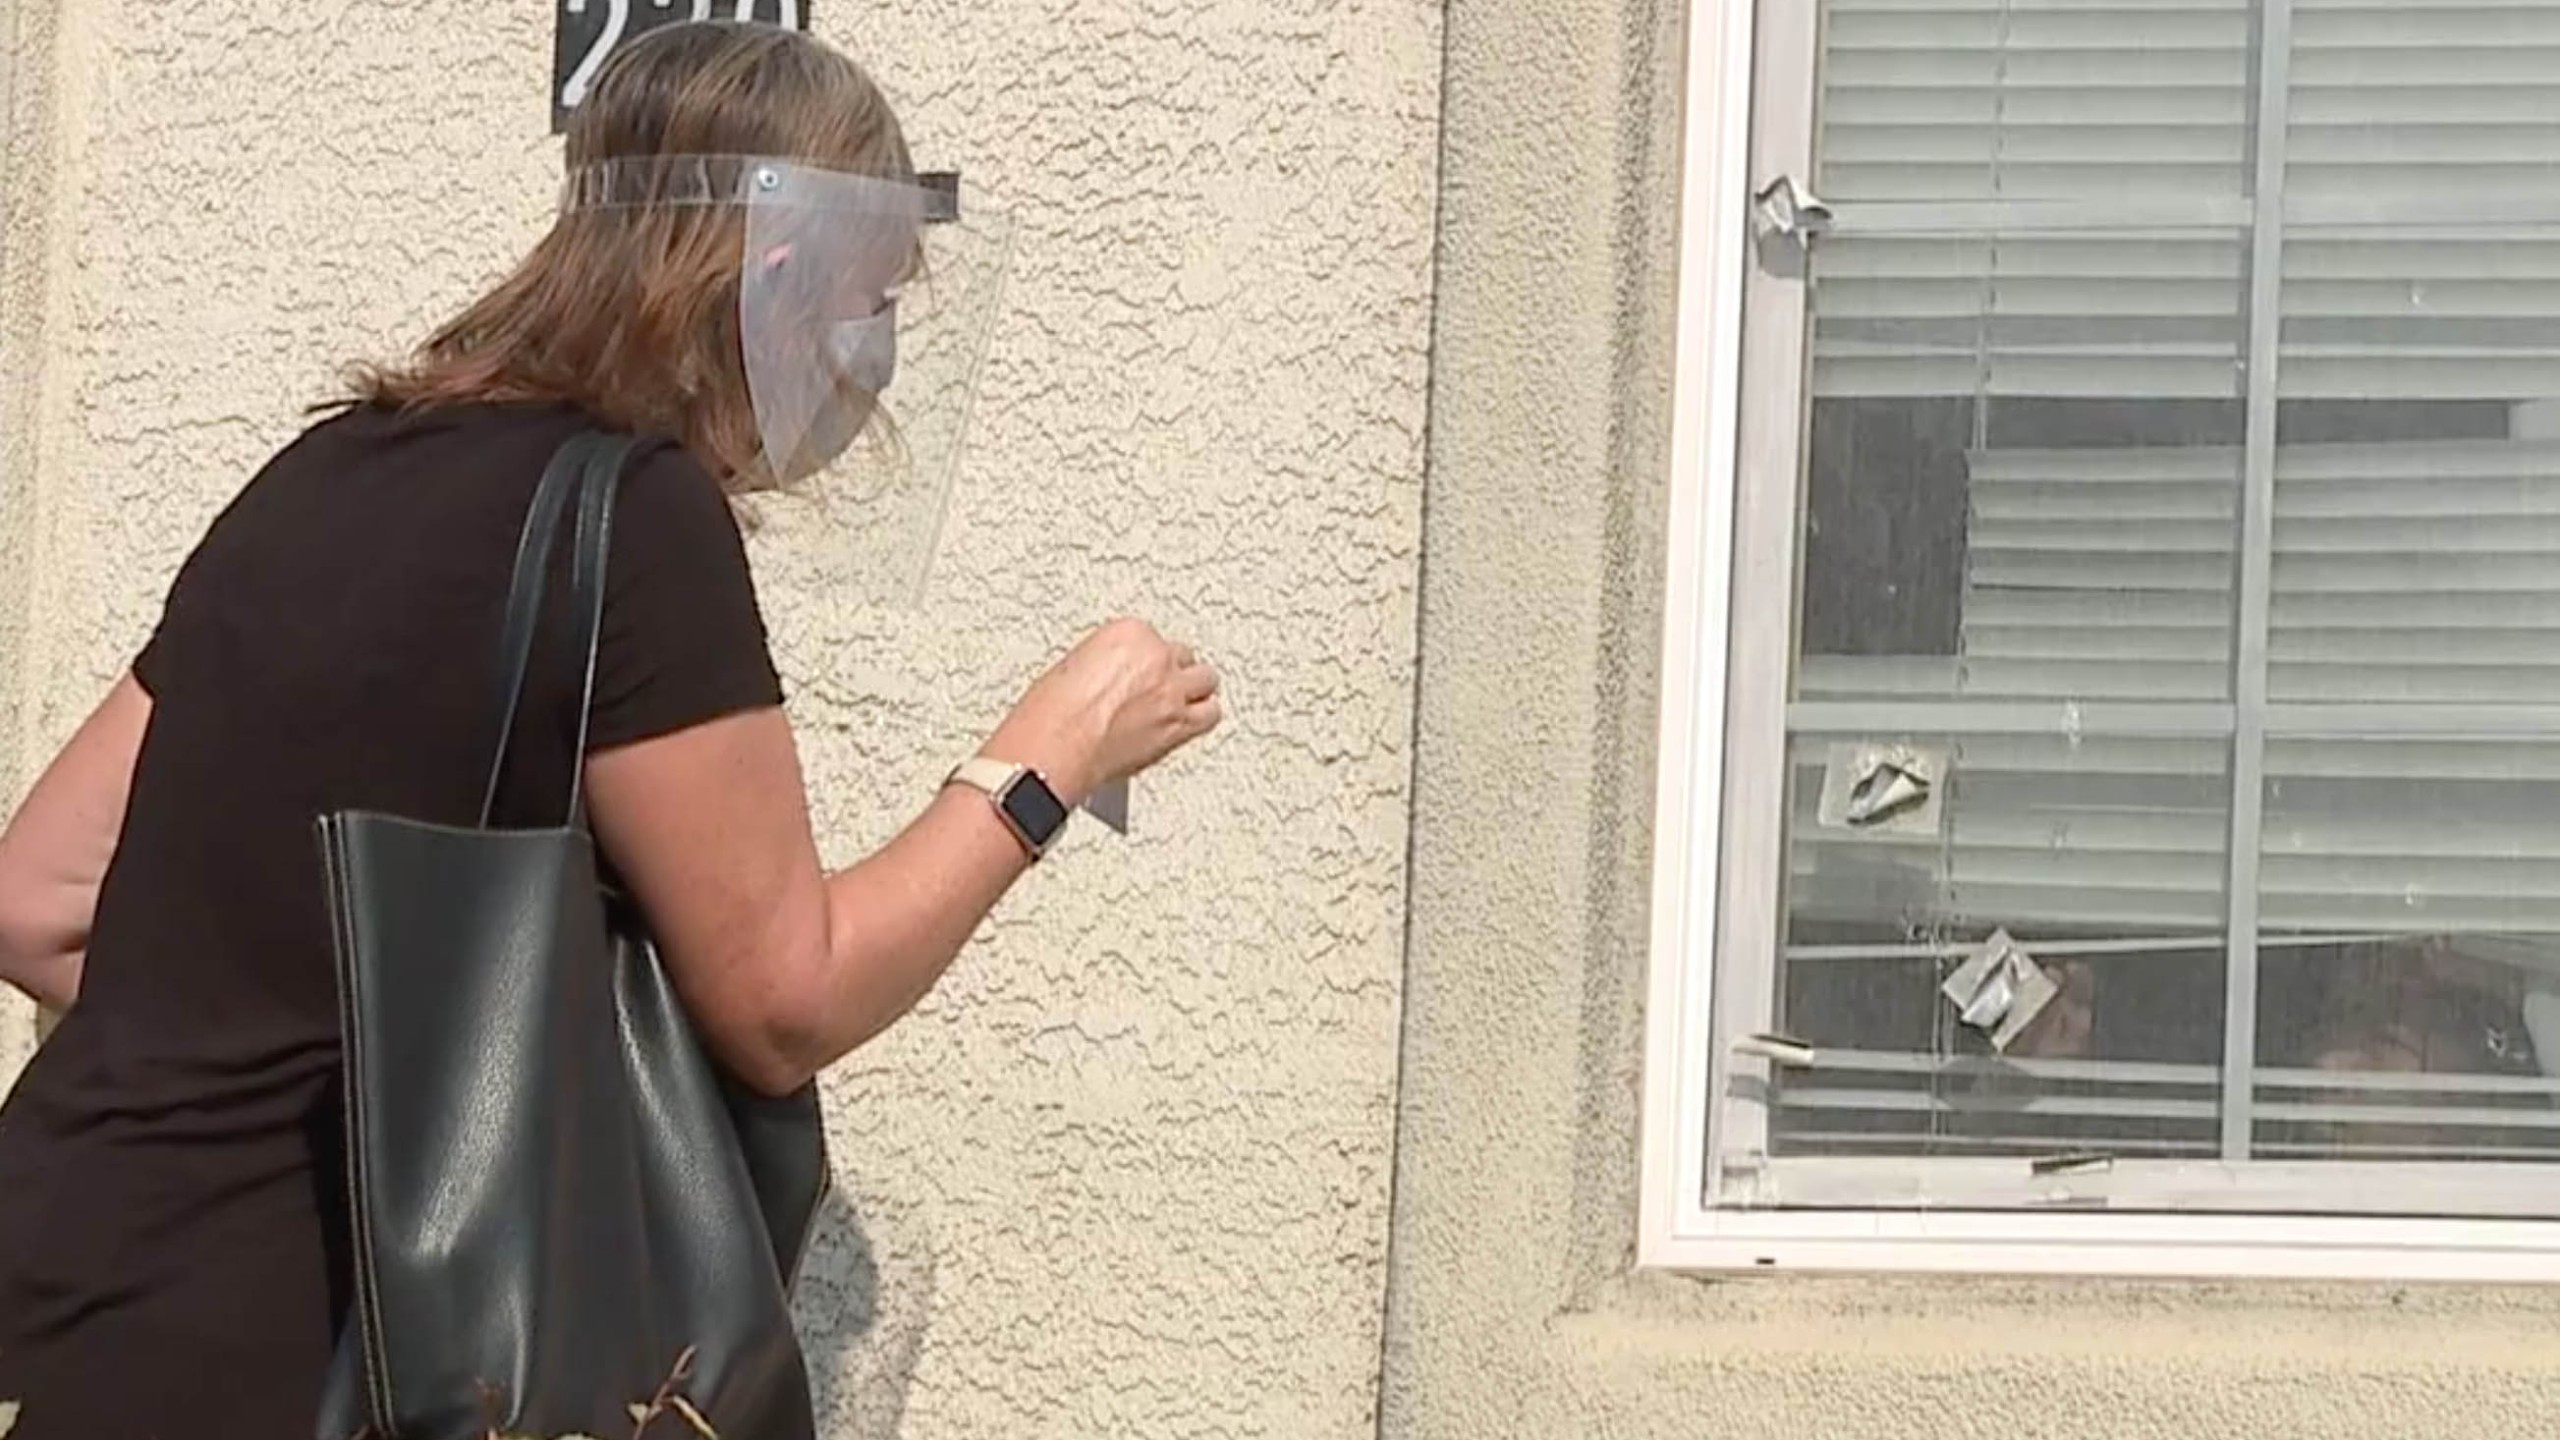 Laurie Butler identifying herself as she tries to search for a student (KTXL Photo)